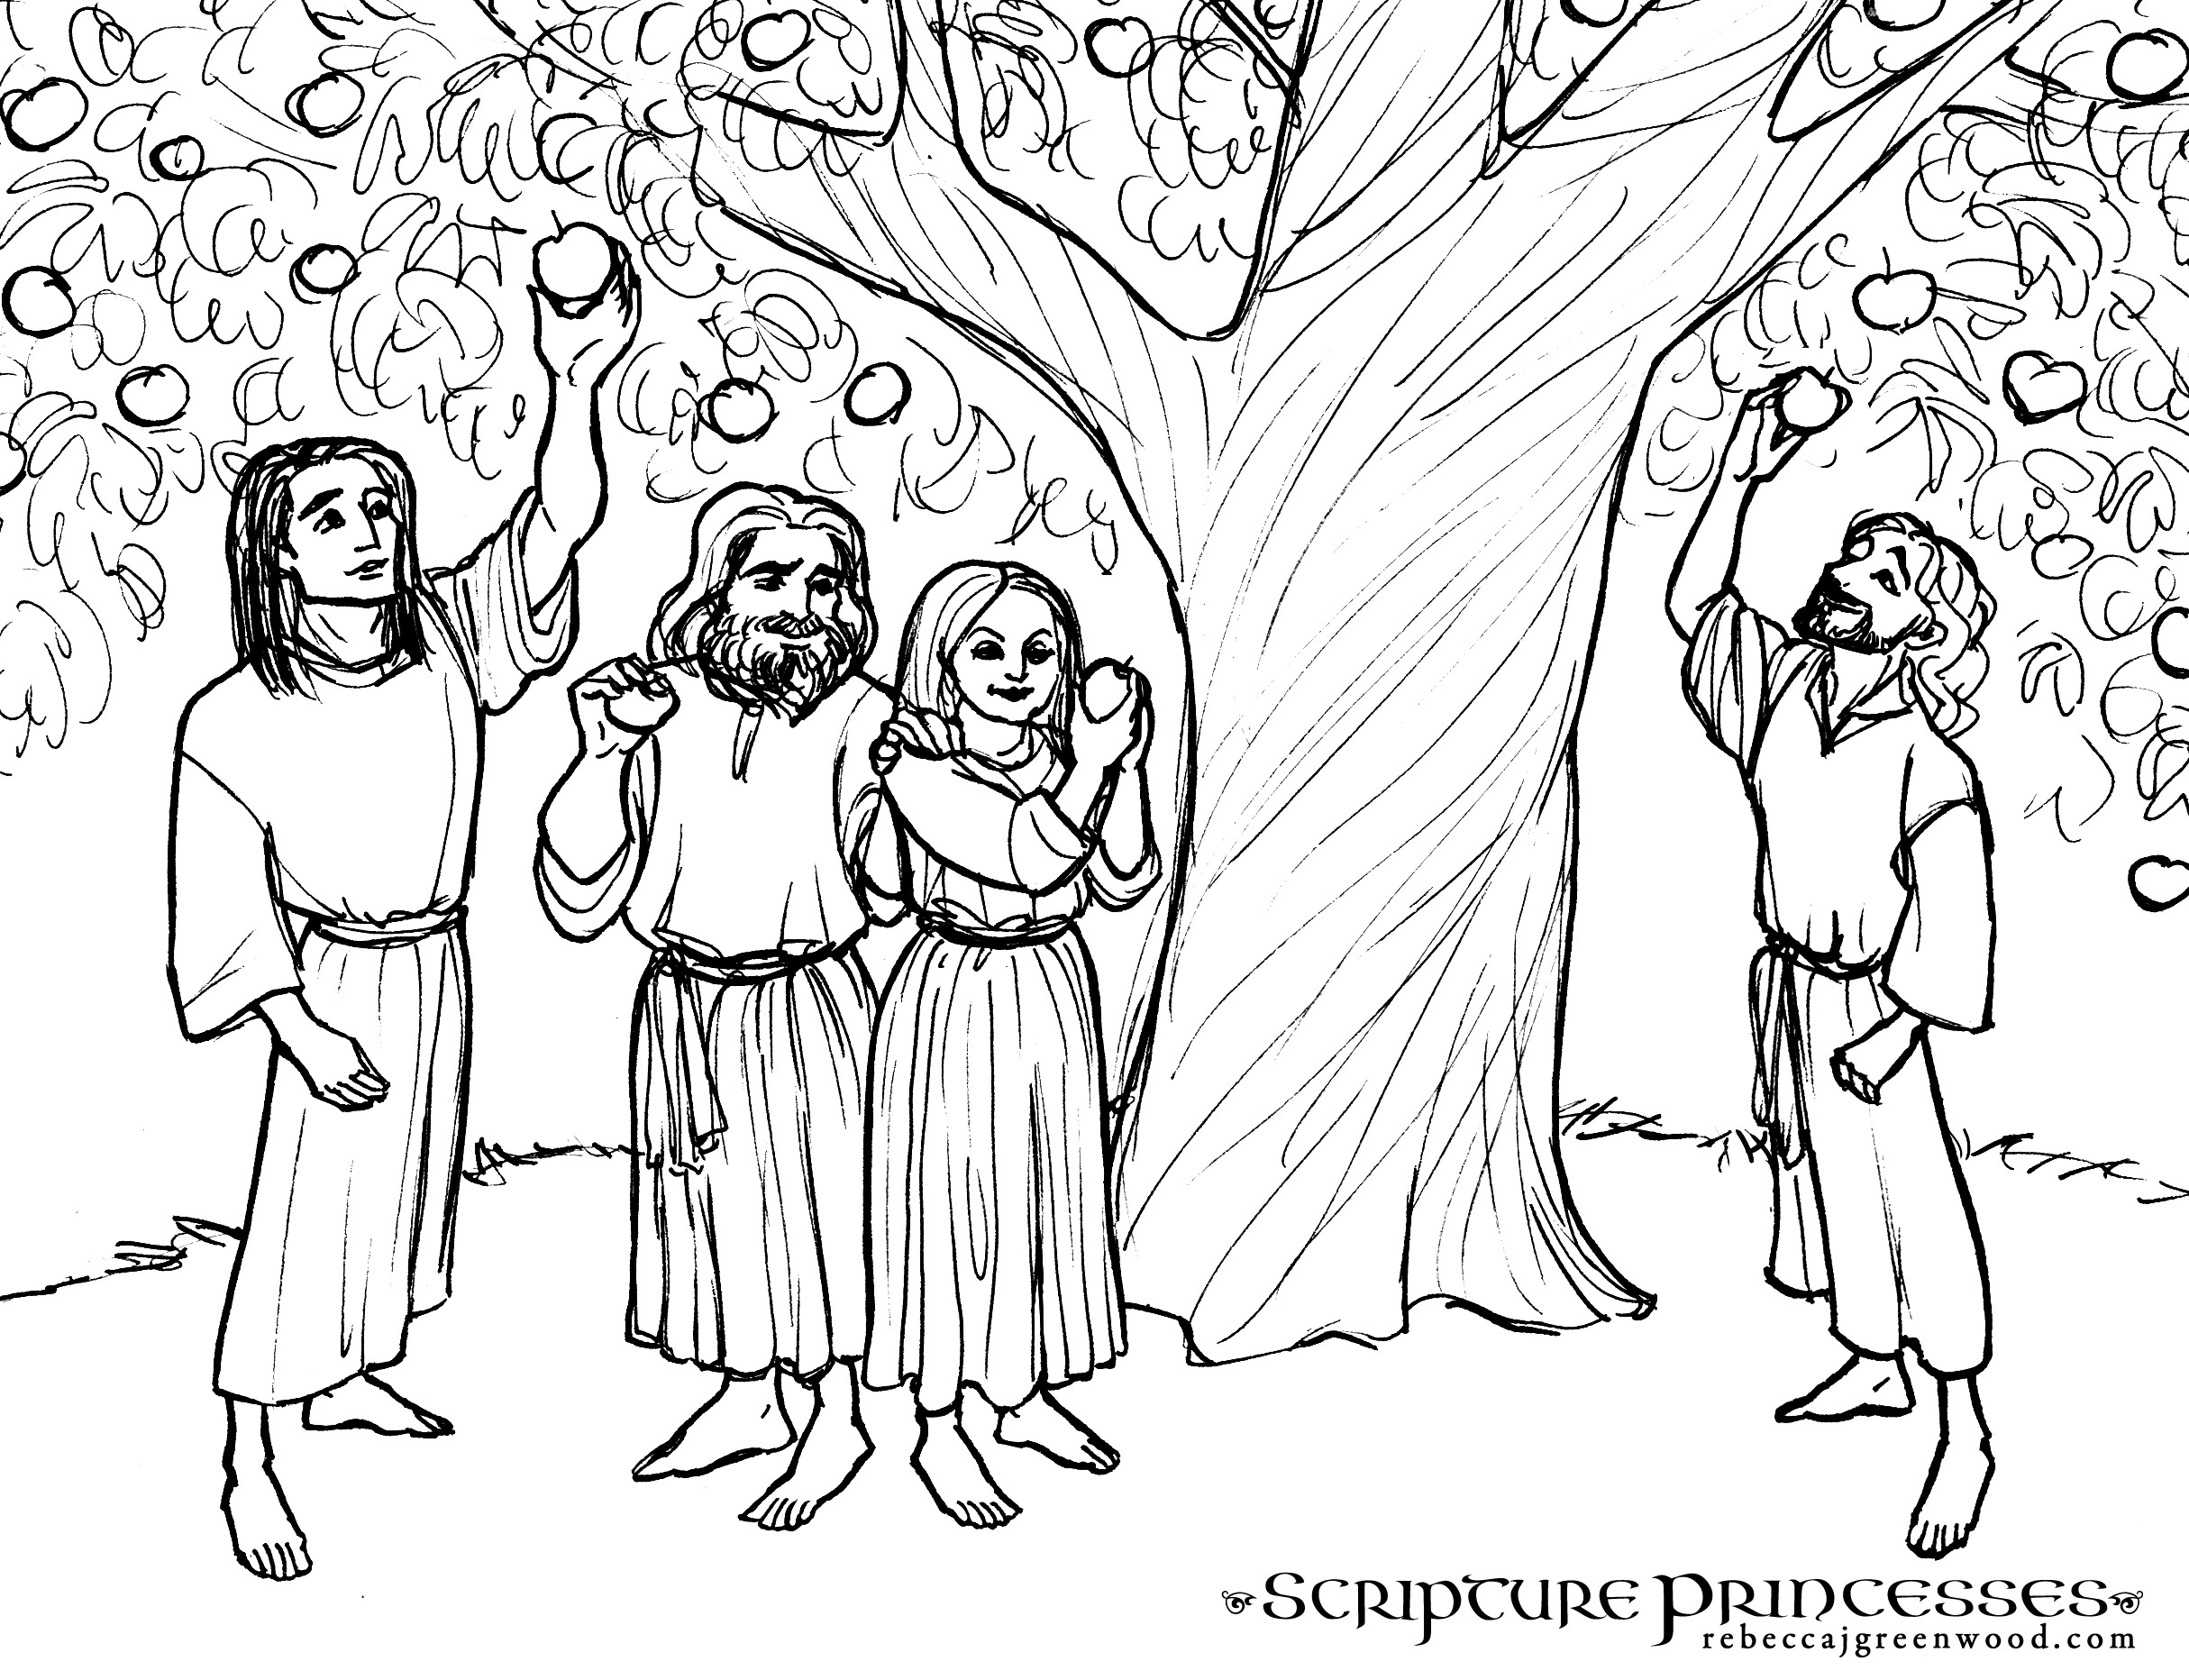 nephi coloring pages - photo#23